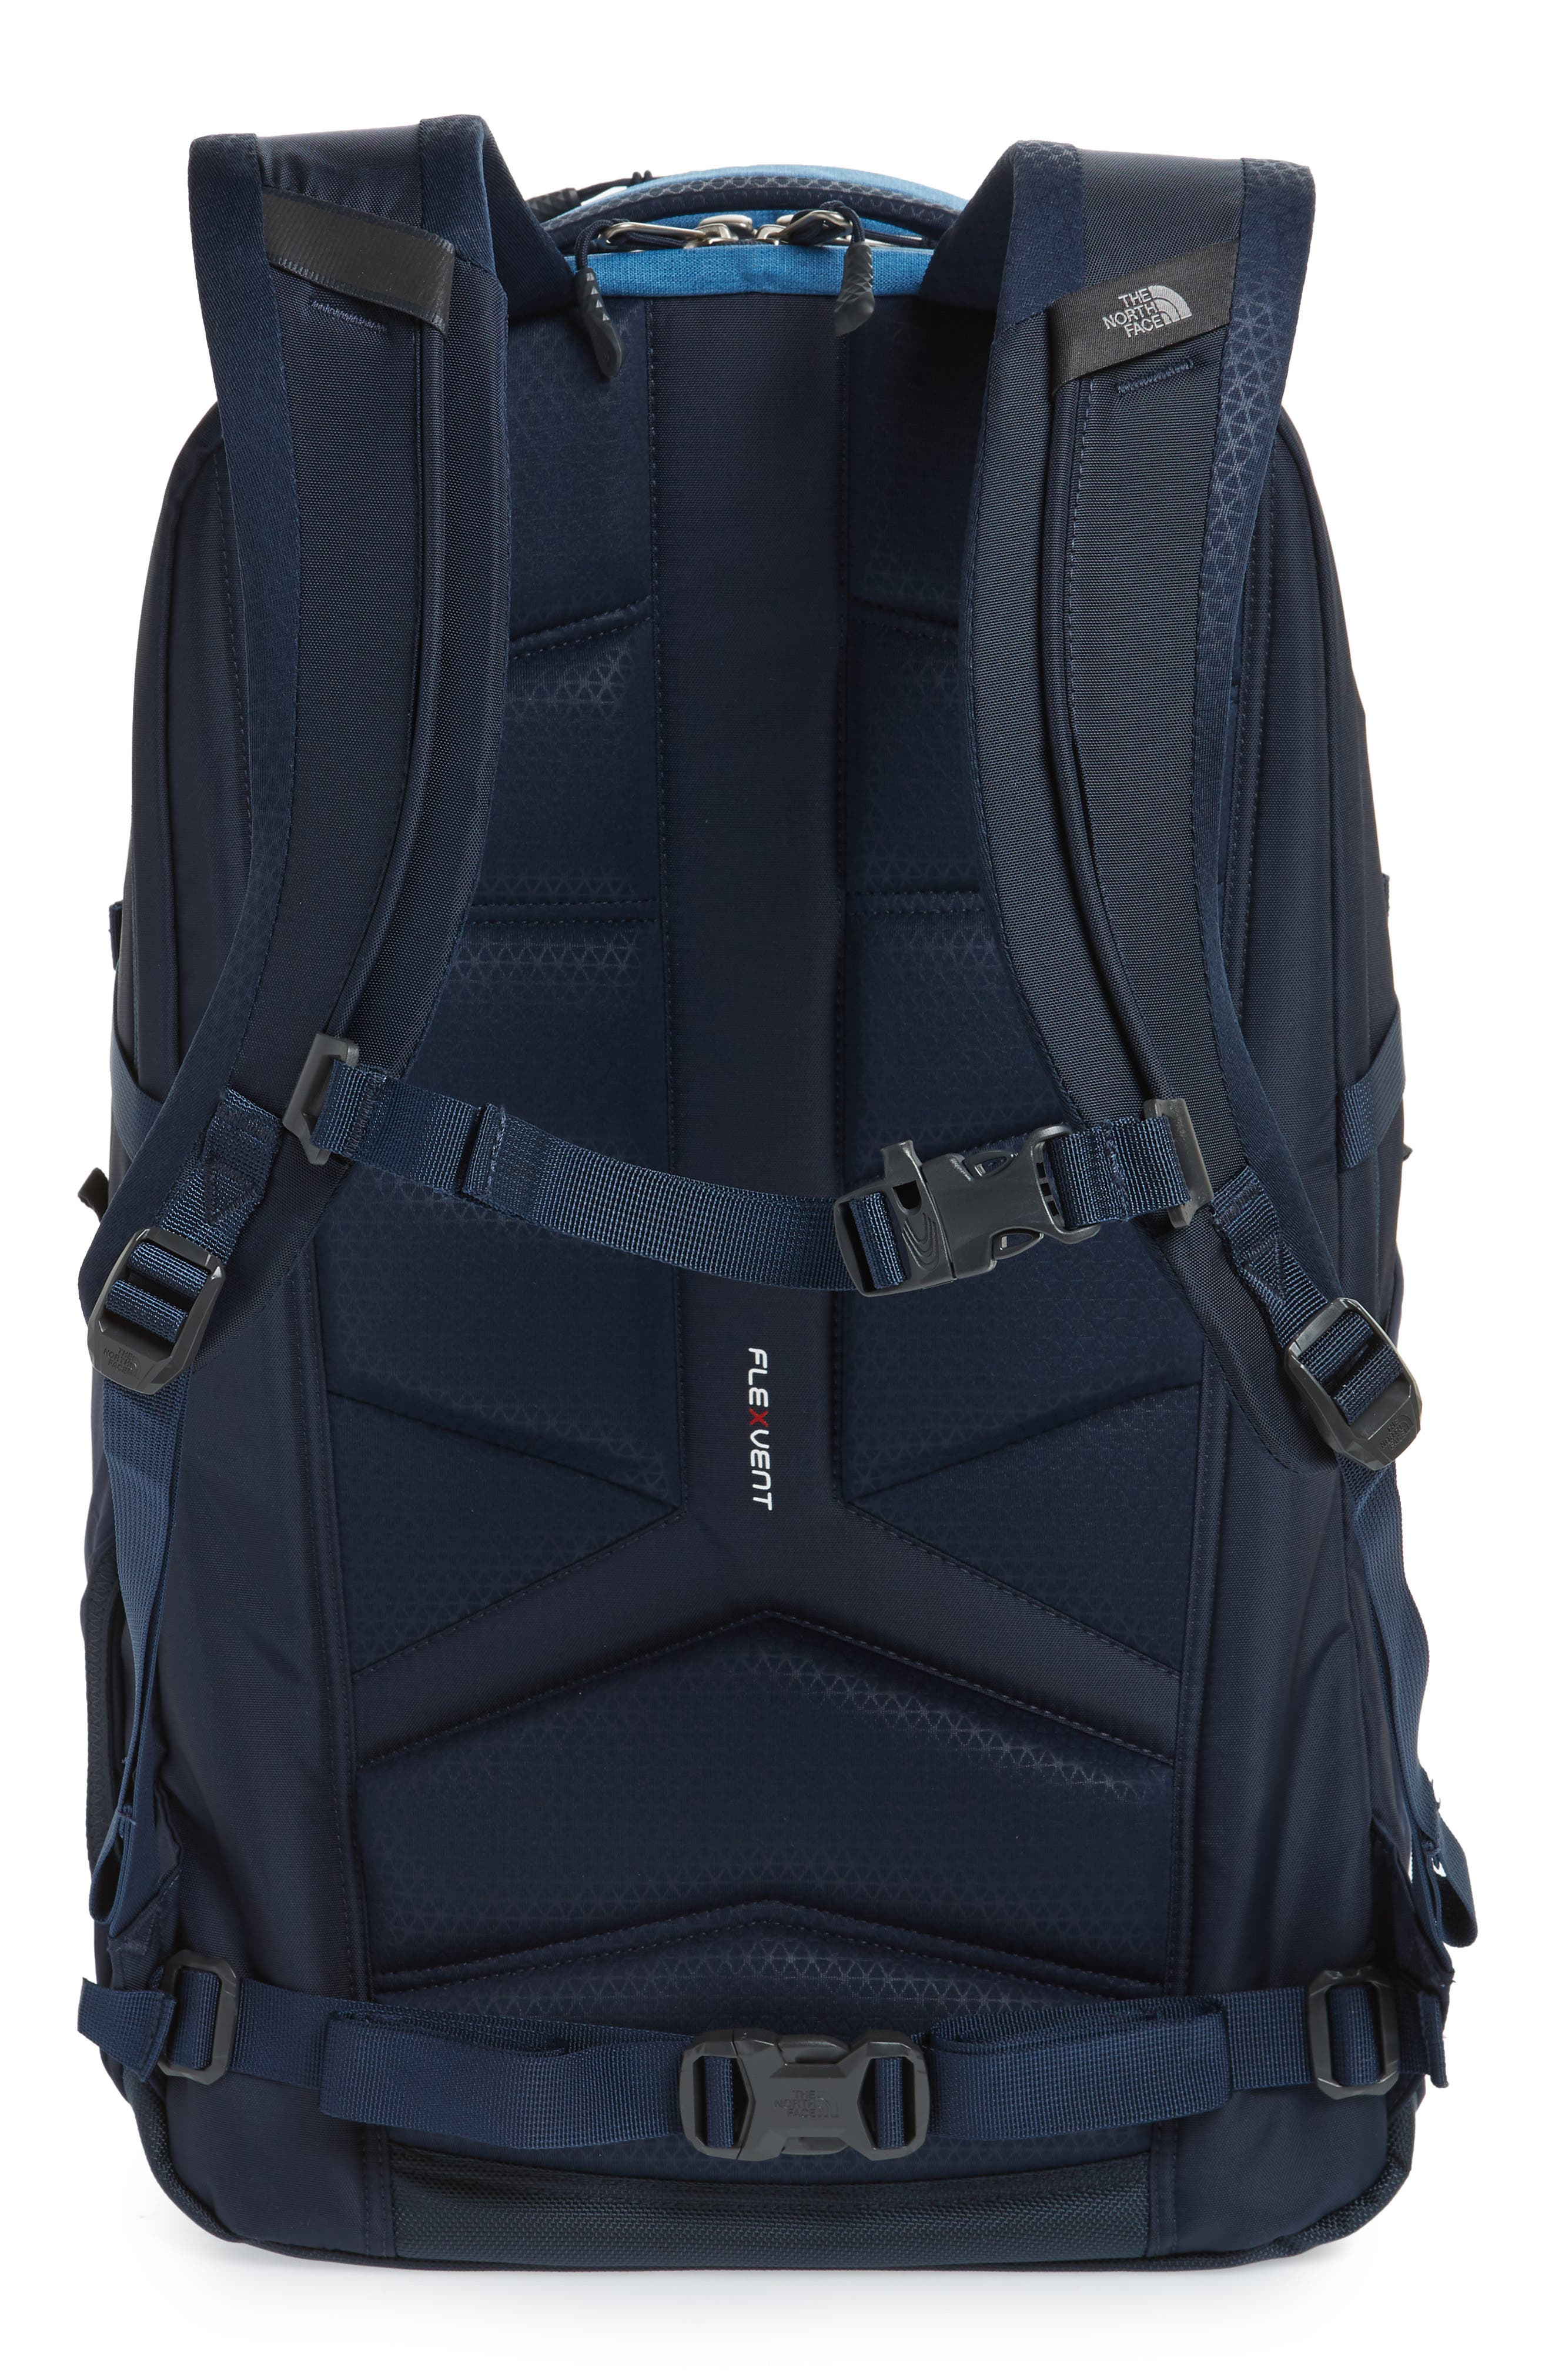 THE NORTH FACE,                             Router Backpack,                             Alternate thumbnail 3, color,                             DISH BLUE HEATHER/ URBAN NAVY